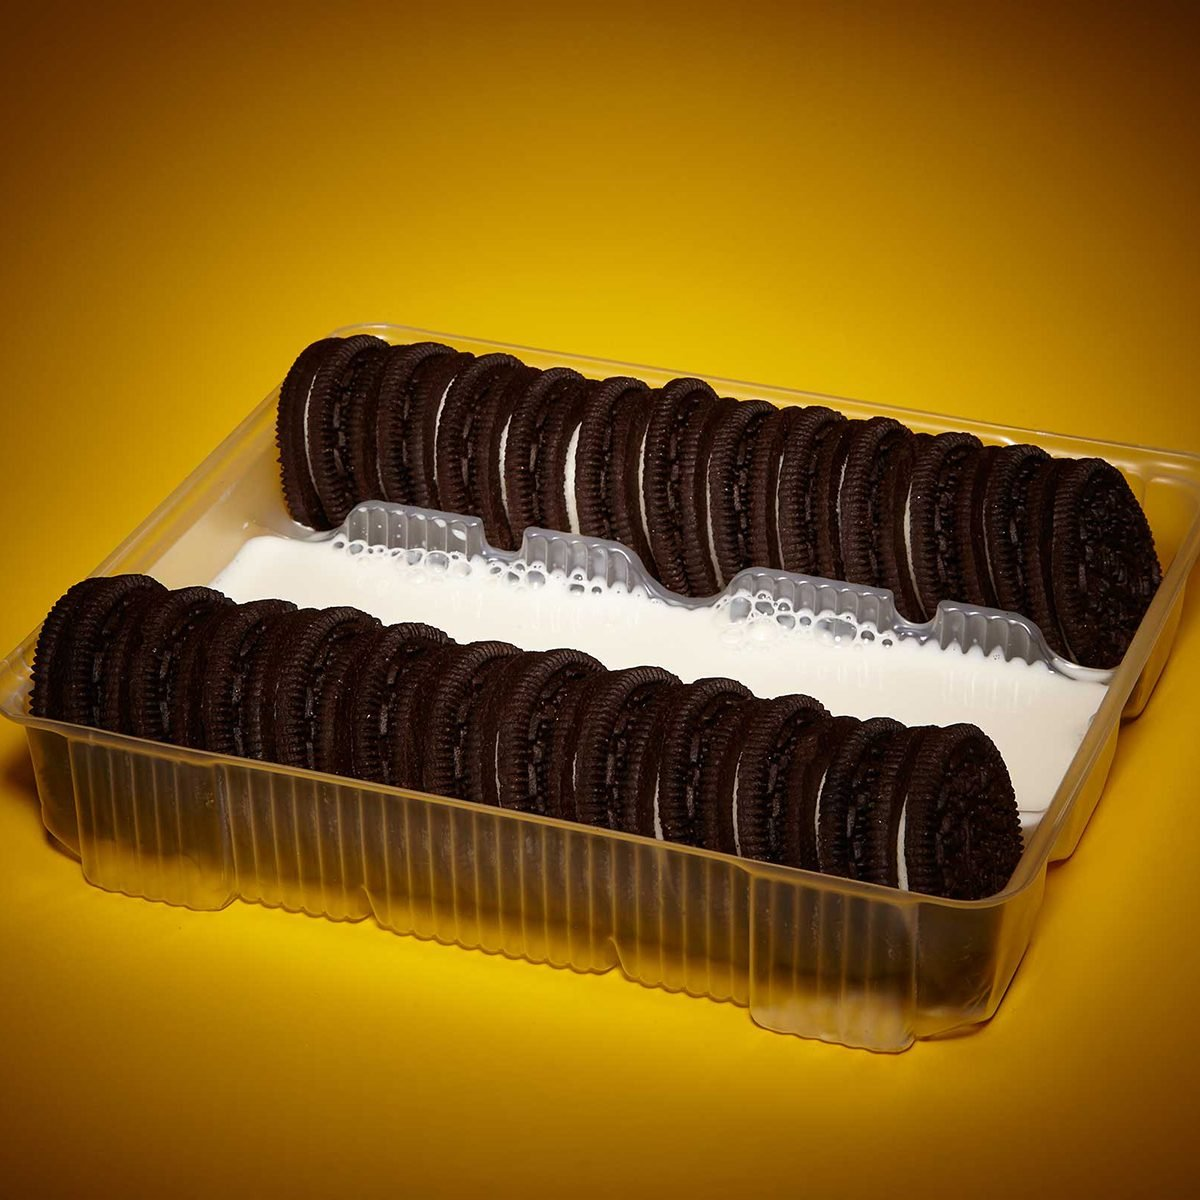 Oreo tray with the middle row filled with milk